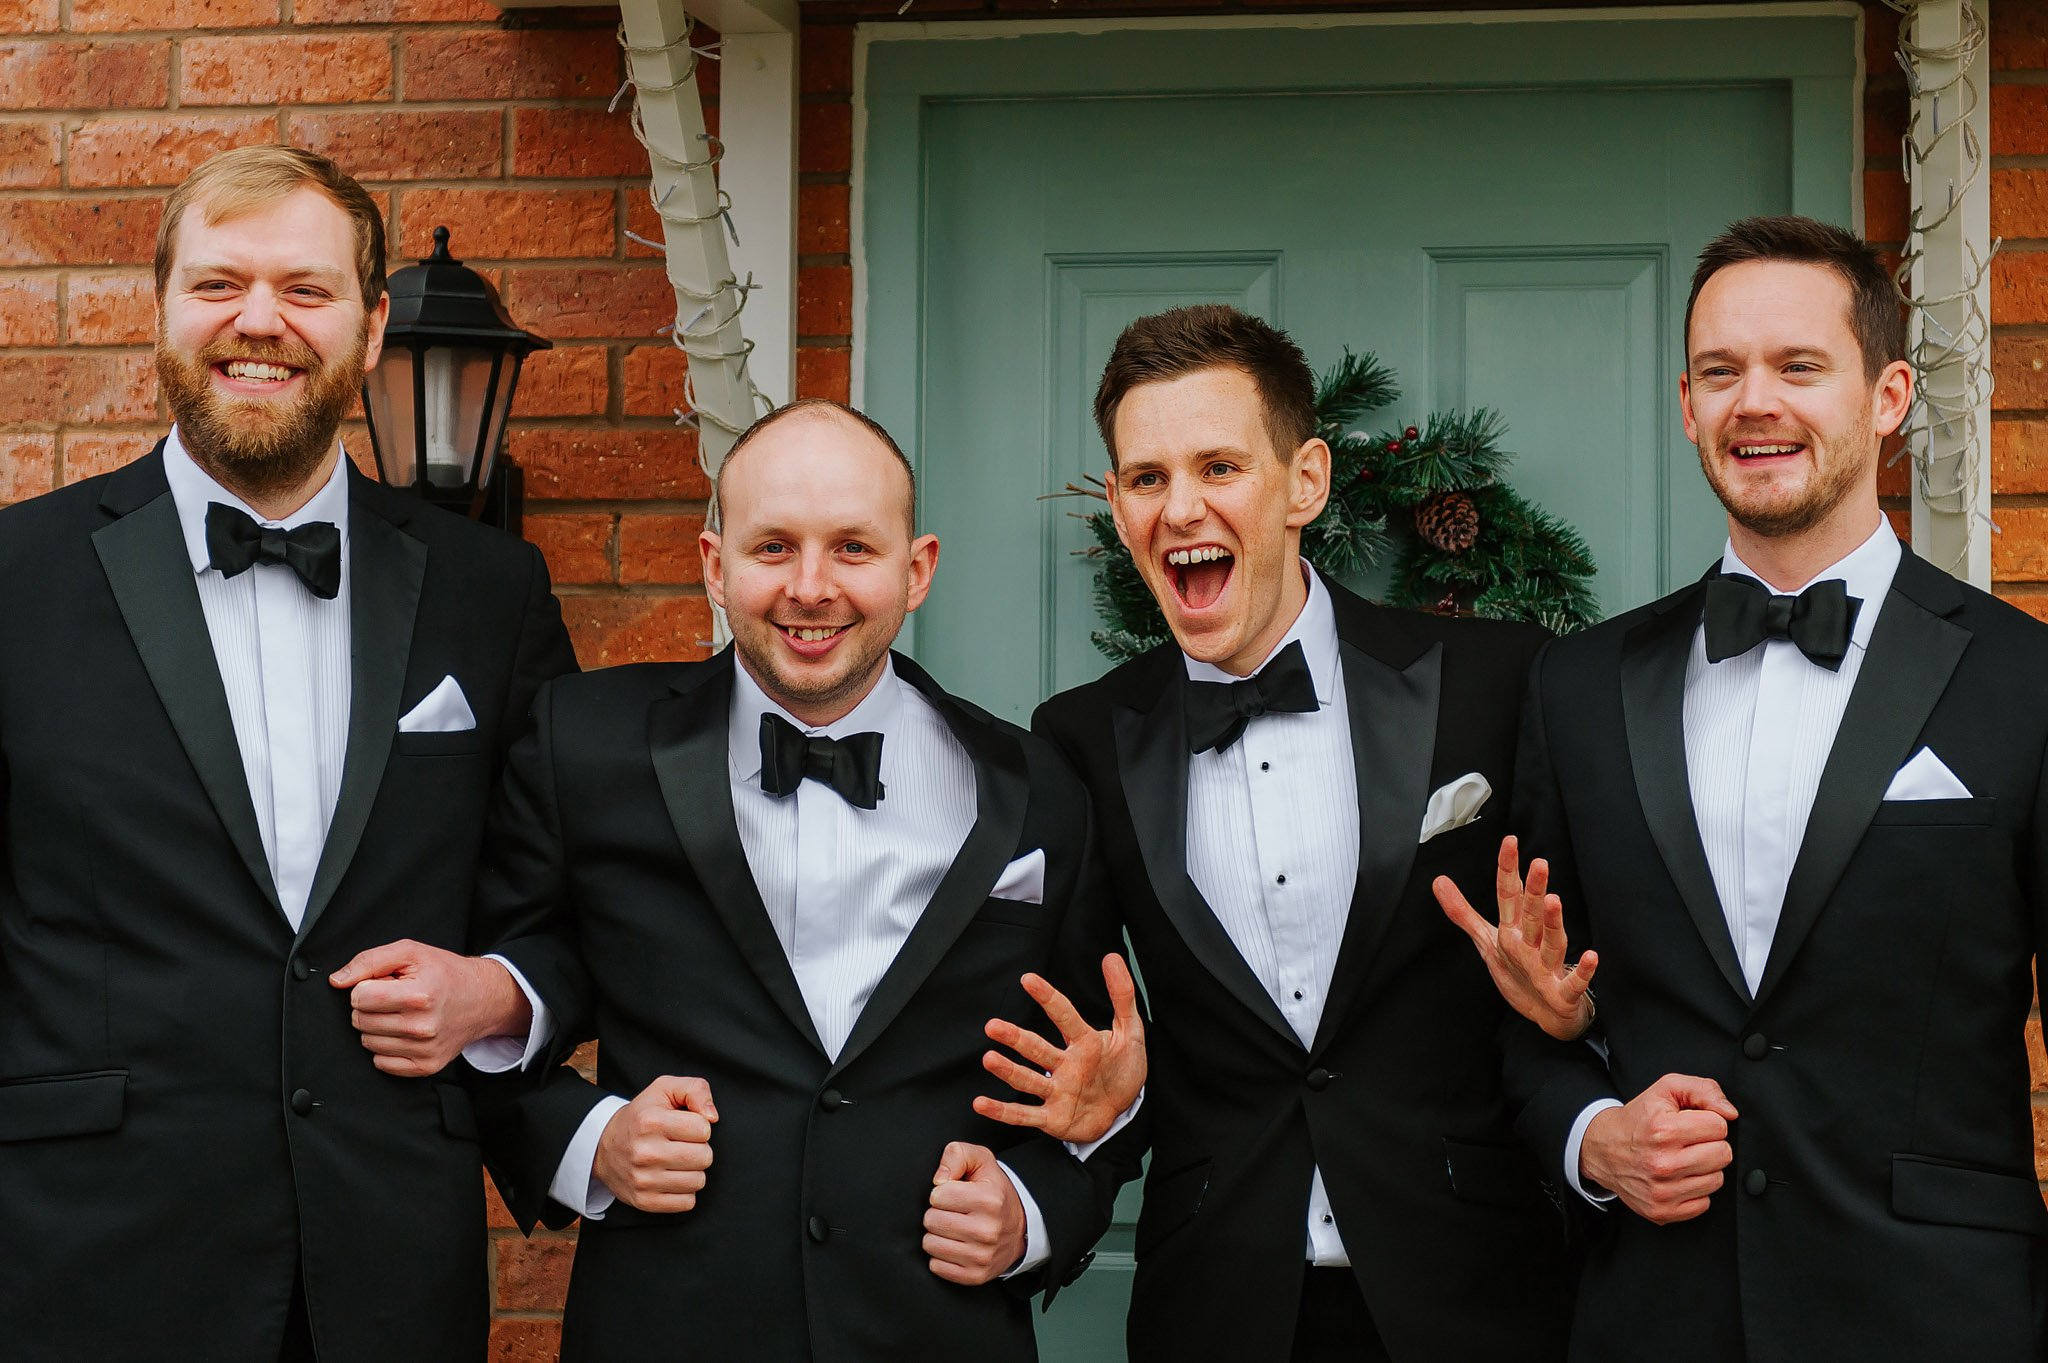 Coombe Abbey wedding in Coventry, Warwickshire - Sam + Matt 8